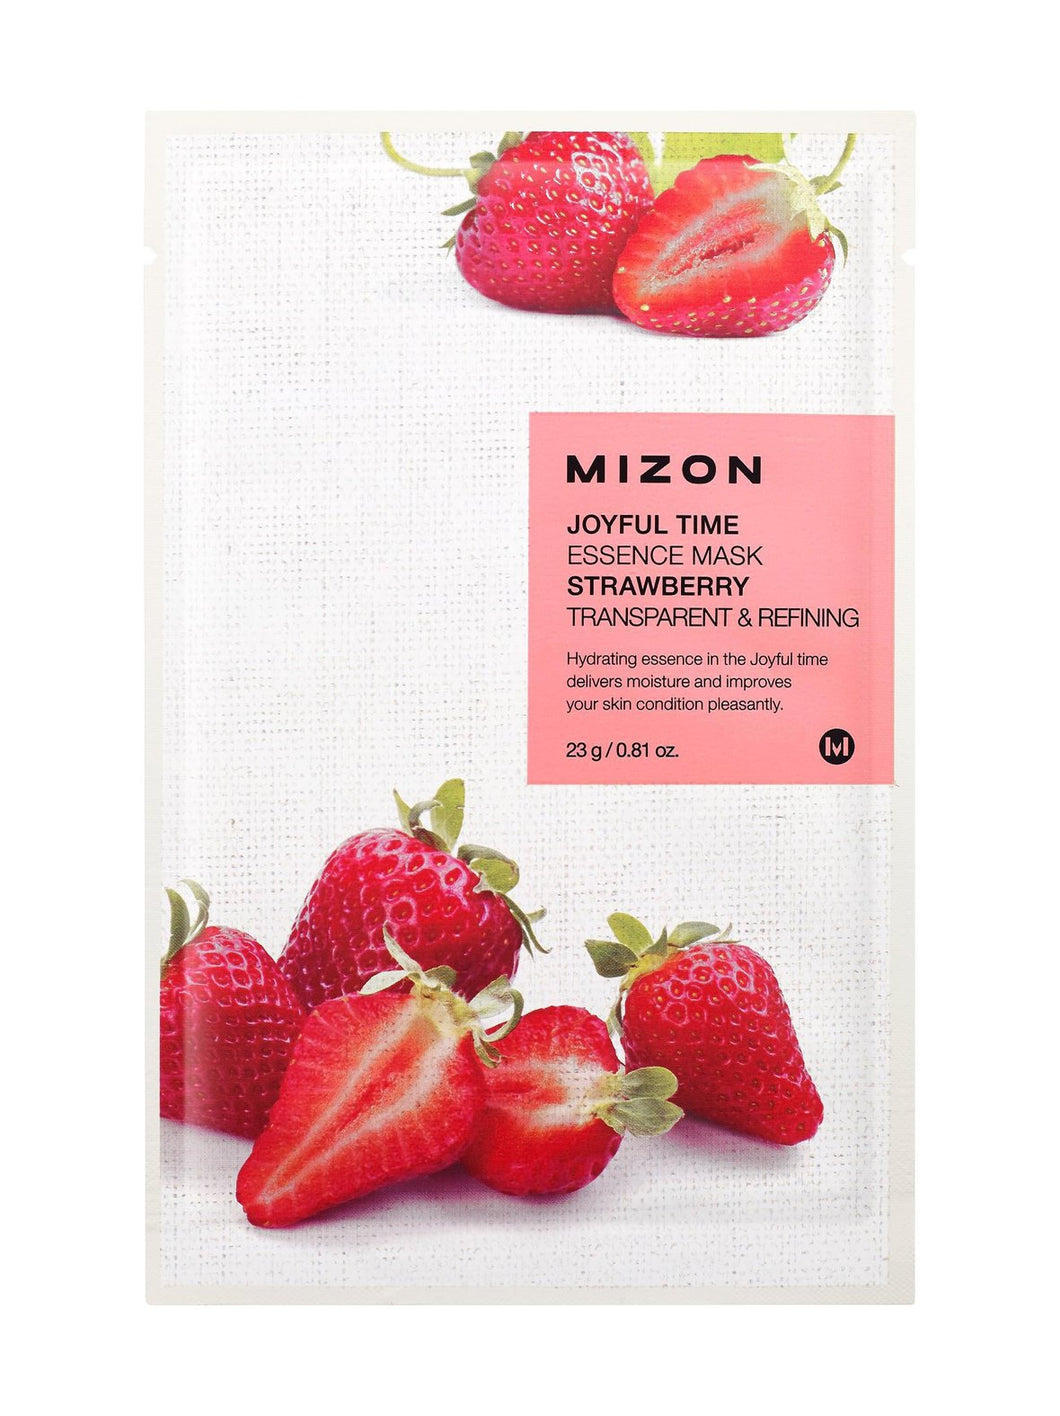 Mizon Joyful Time Essence Strawberry Mask